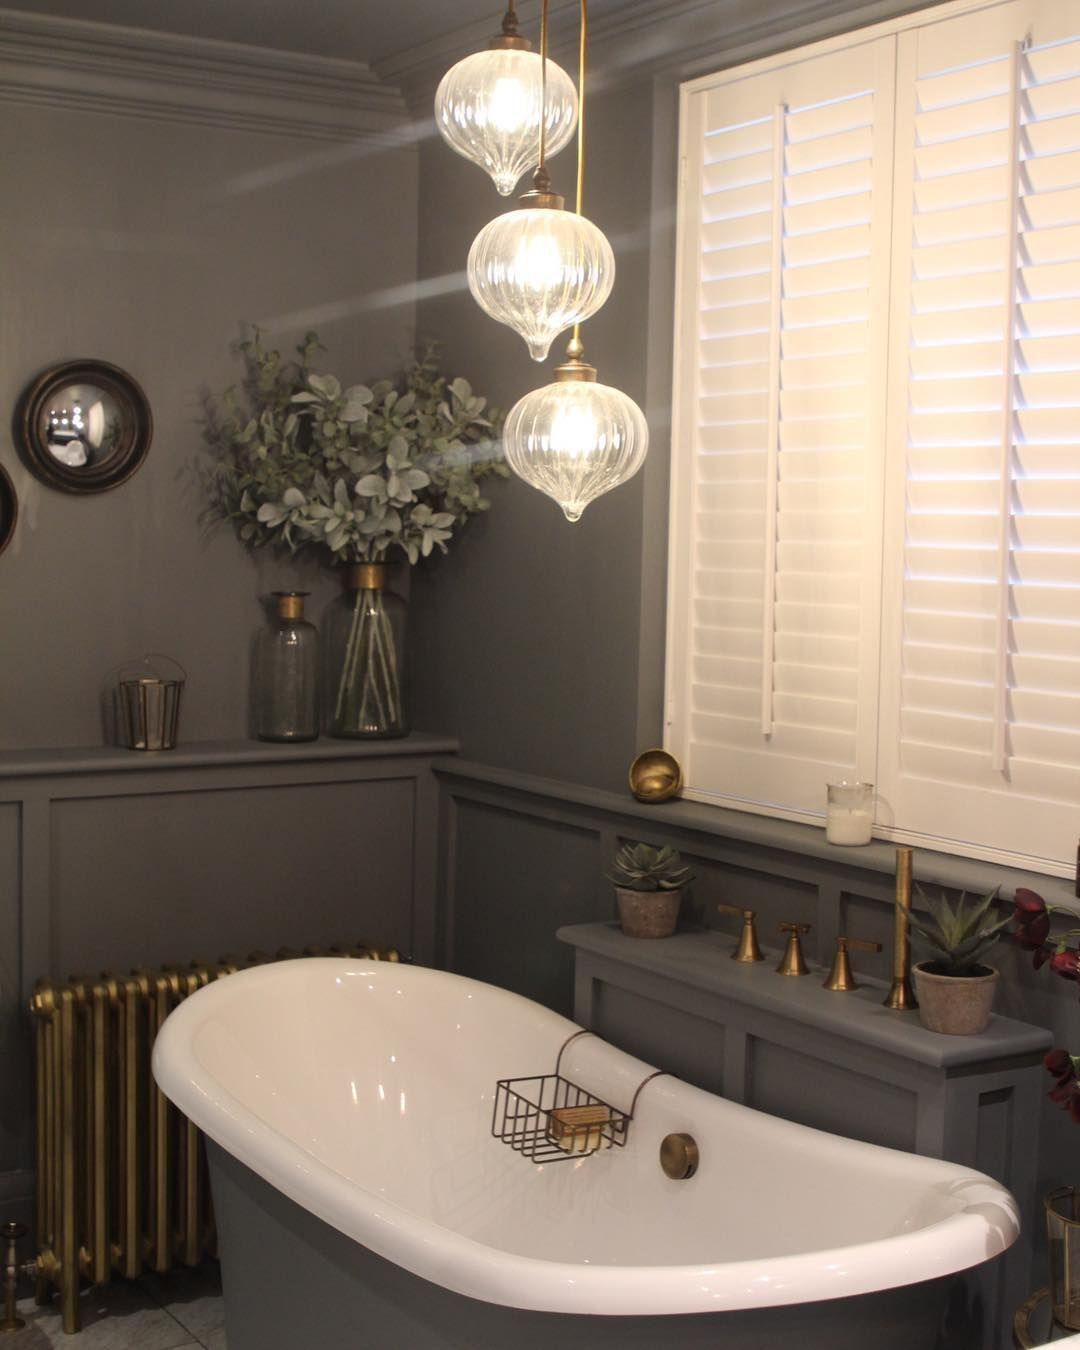 Or Pendant Lights Above Bath Like This Would We Then Have Wall Lights Attached To The Wall On Either Side Of The Mi House Styles Bathroom Decor Light Fittings